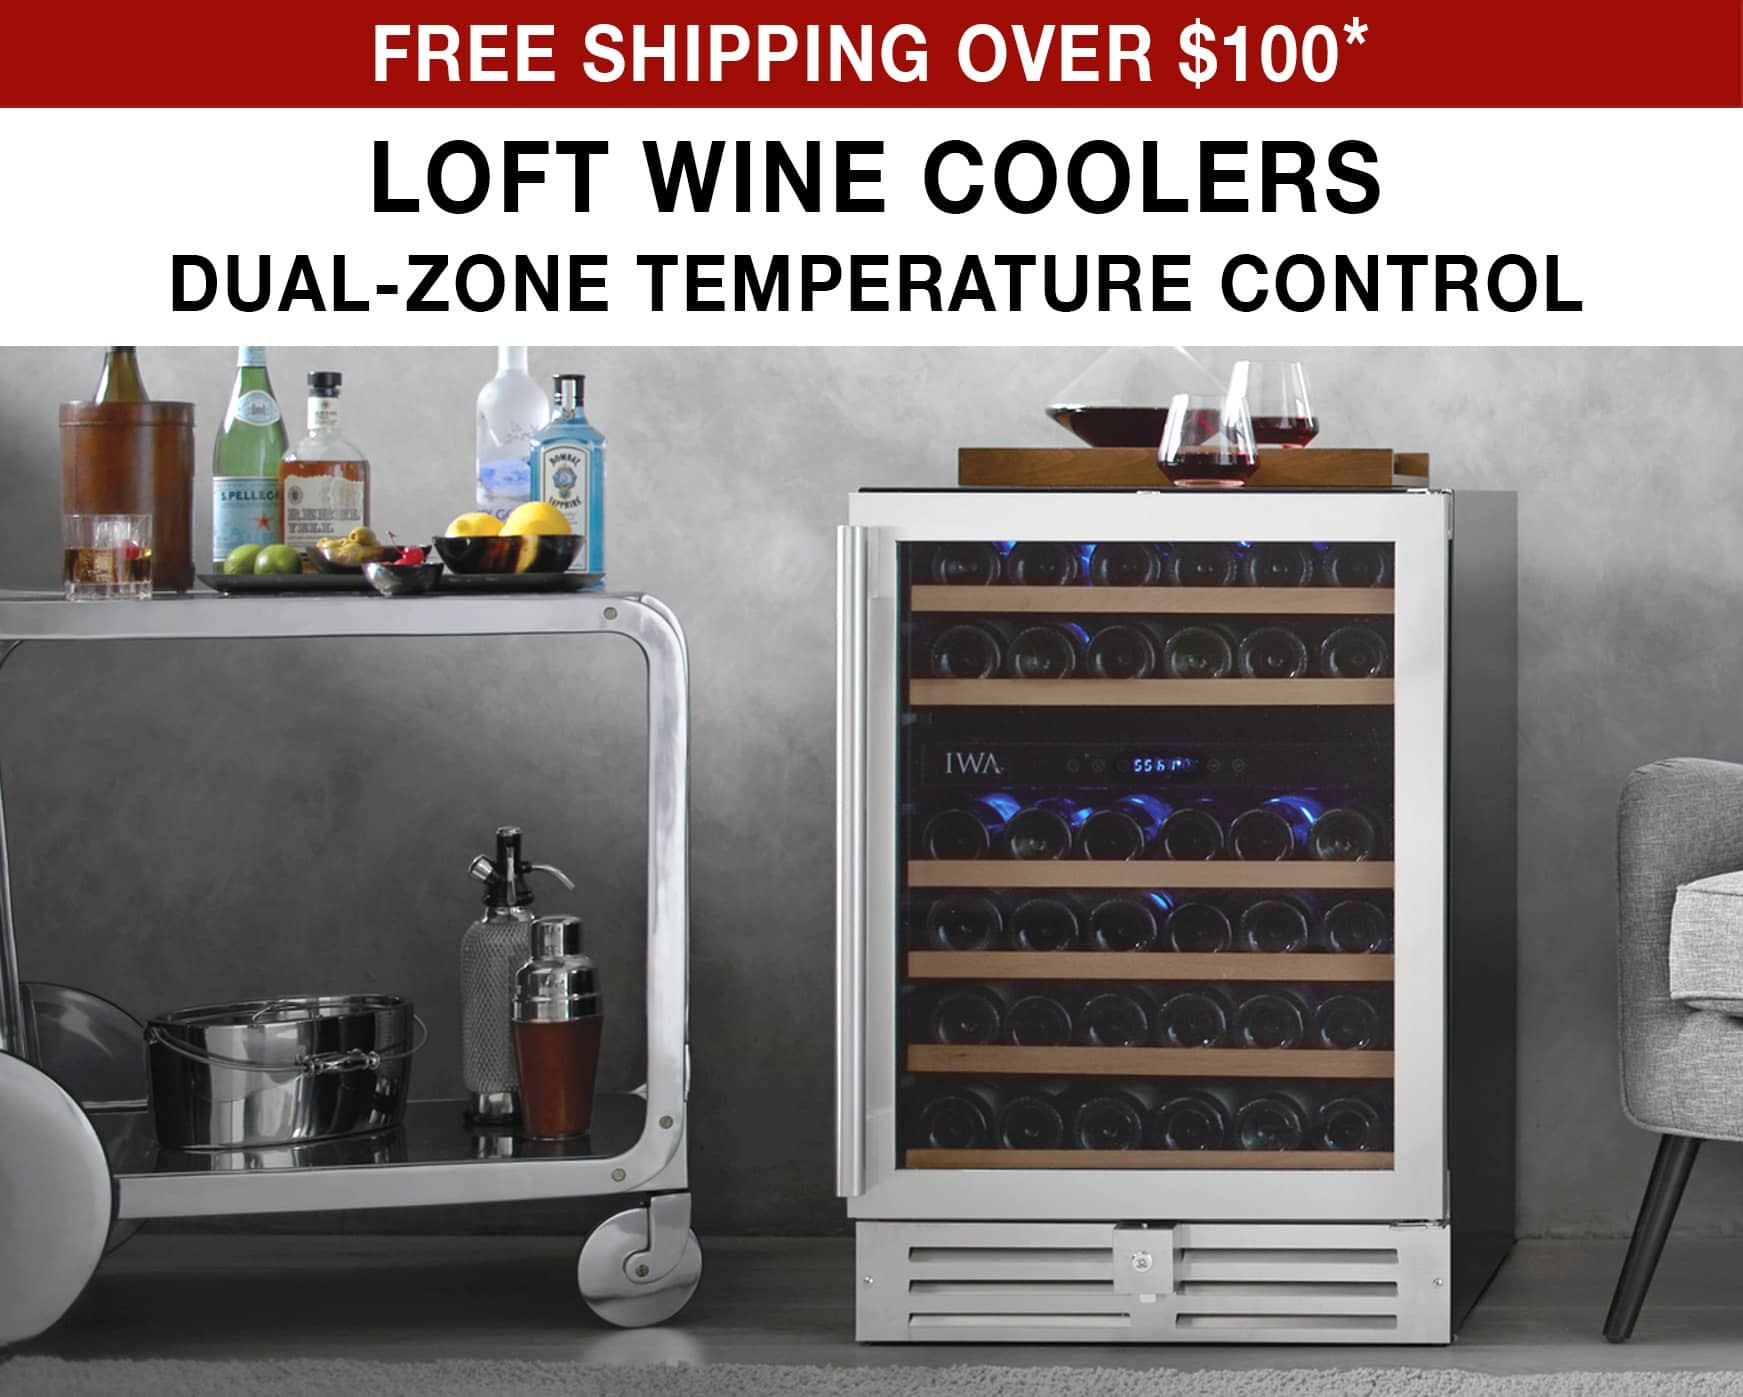 Loft Wine Coolers - Free Shipping Over $100* Use Code FS21WEB